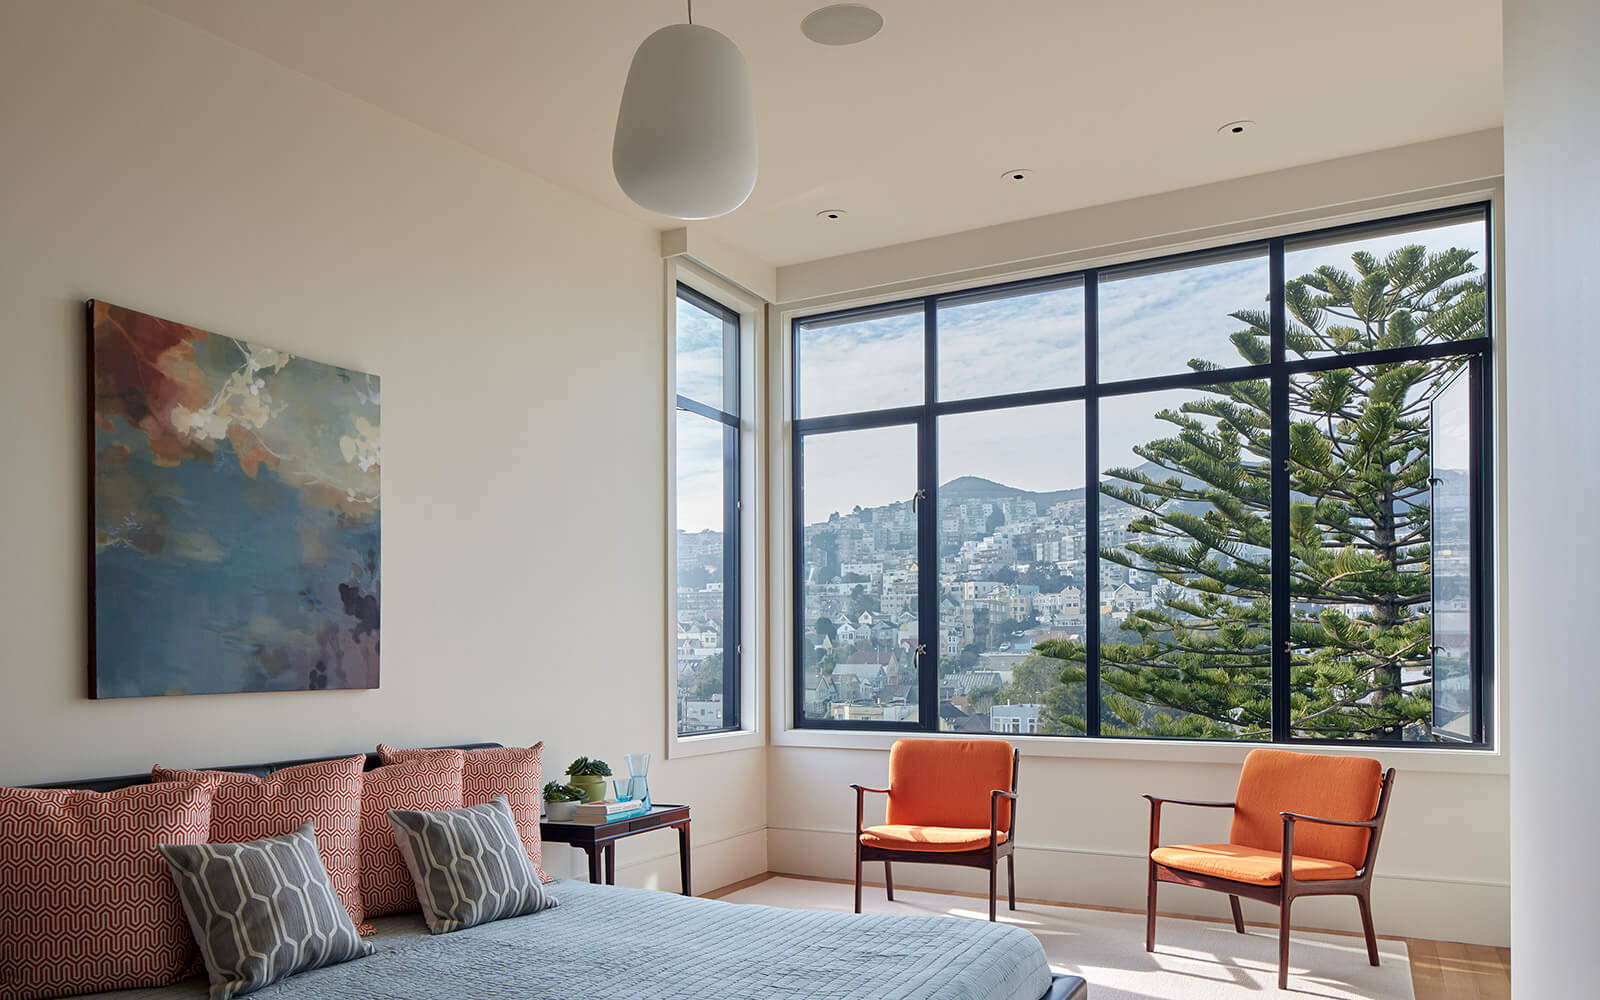 studio vara residential diamond bedroom san francisco views